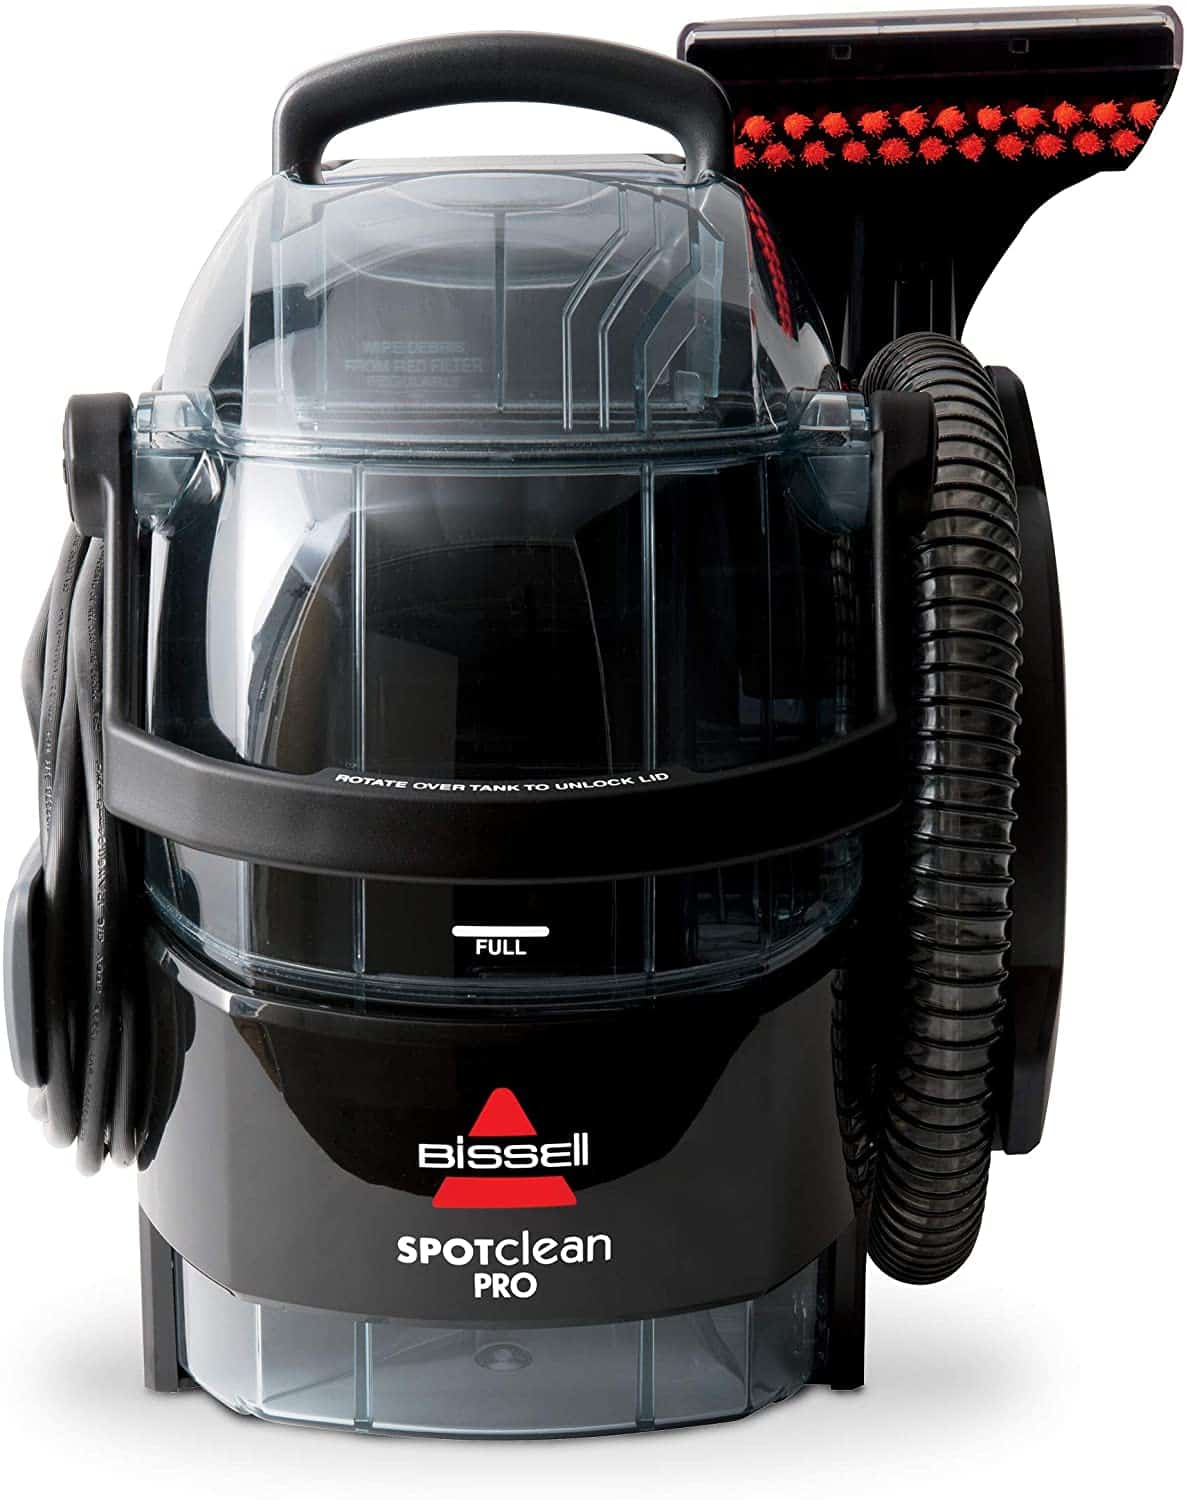 Best carpet vacuum cleaner for pets: Bissell SpotClean Professional 3624